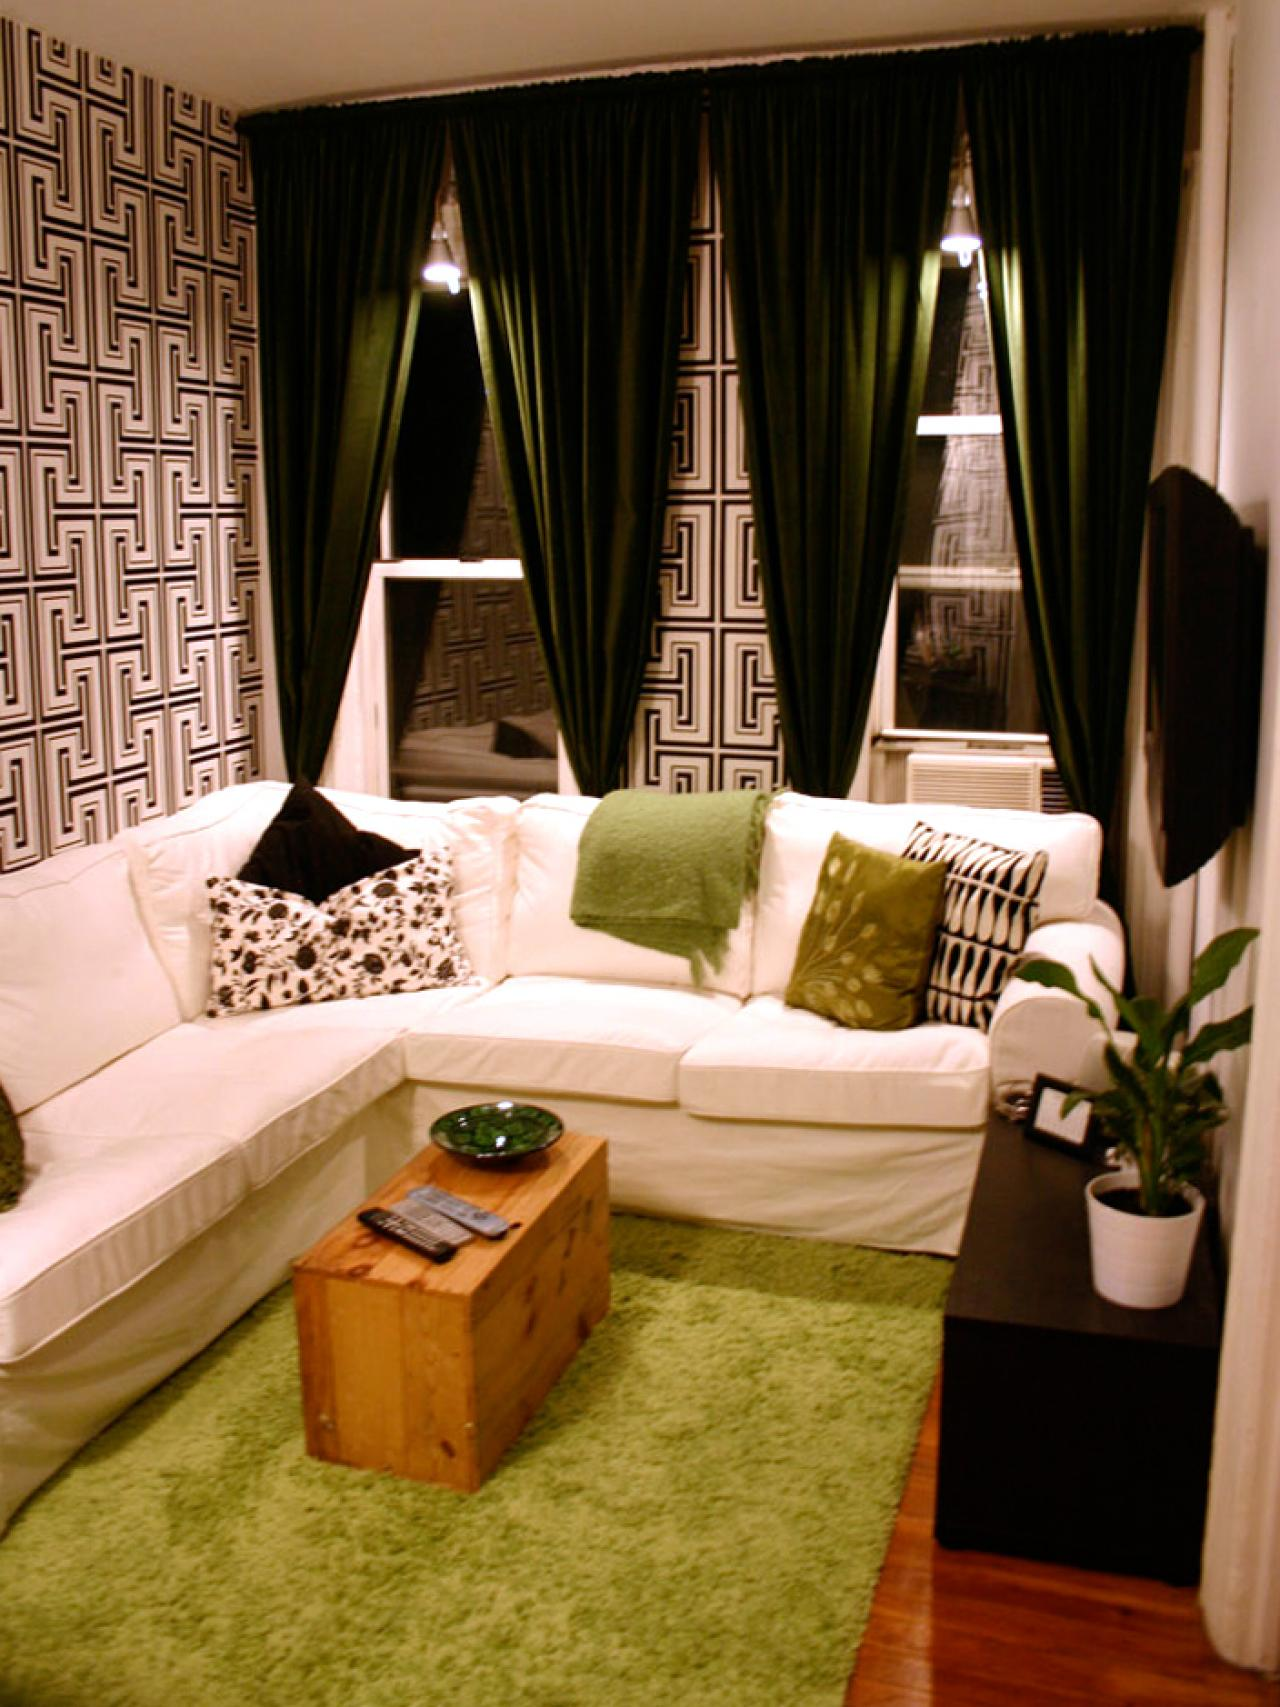 12 design ideas for your studio apartment | hgtv's decorating